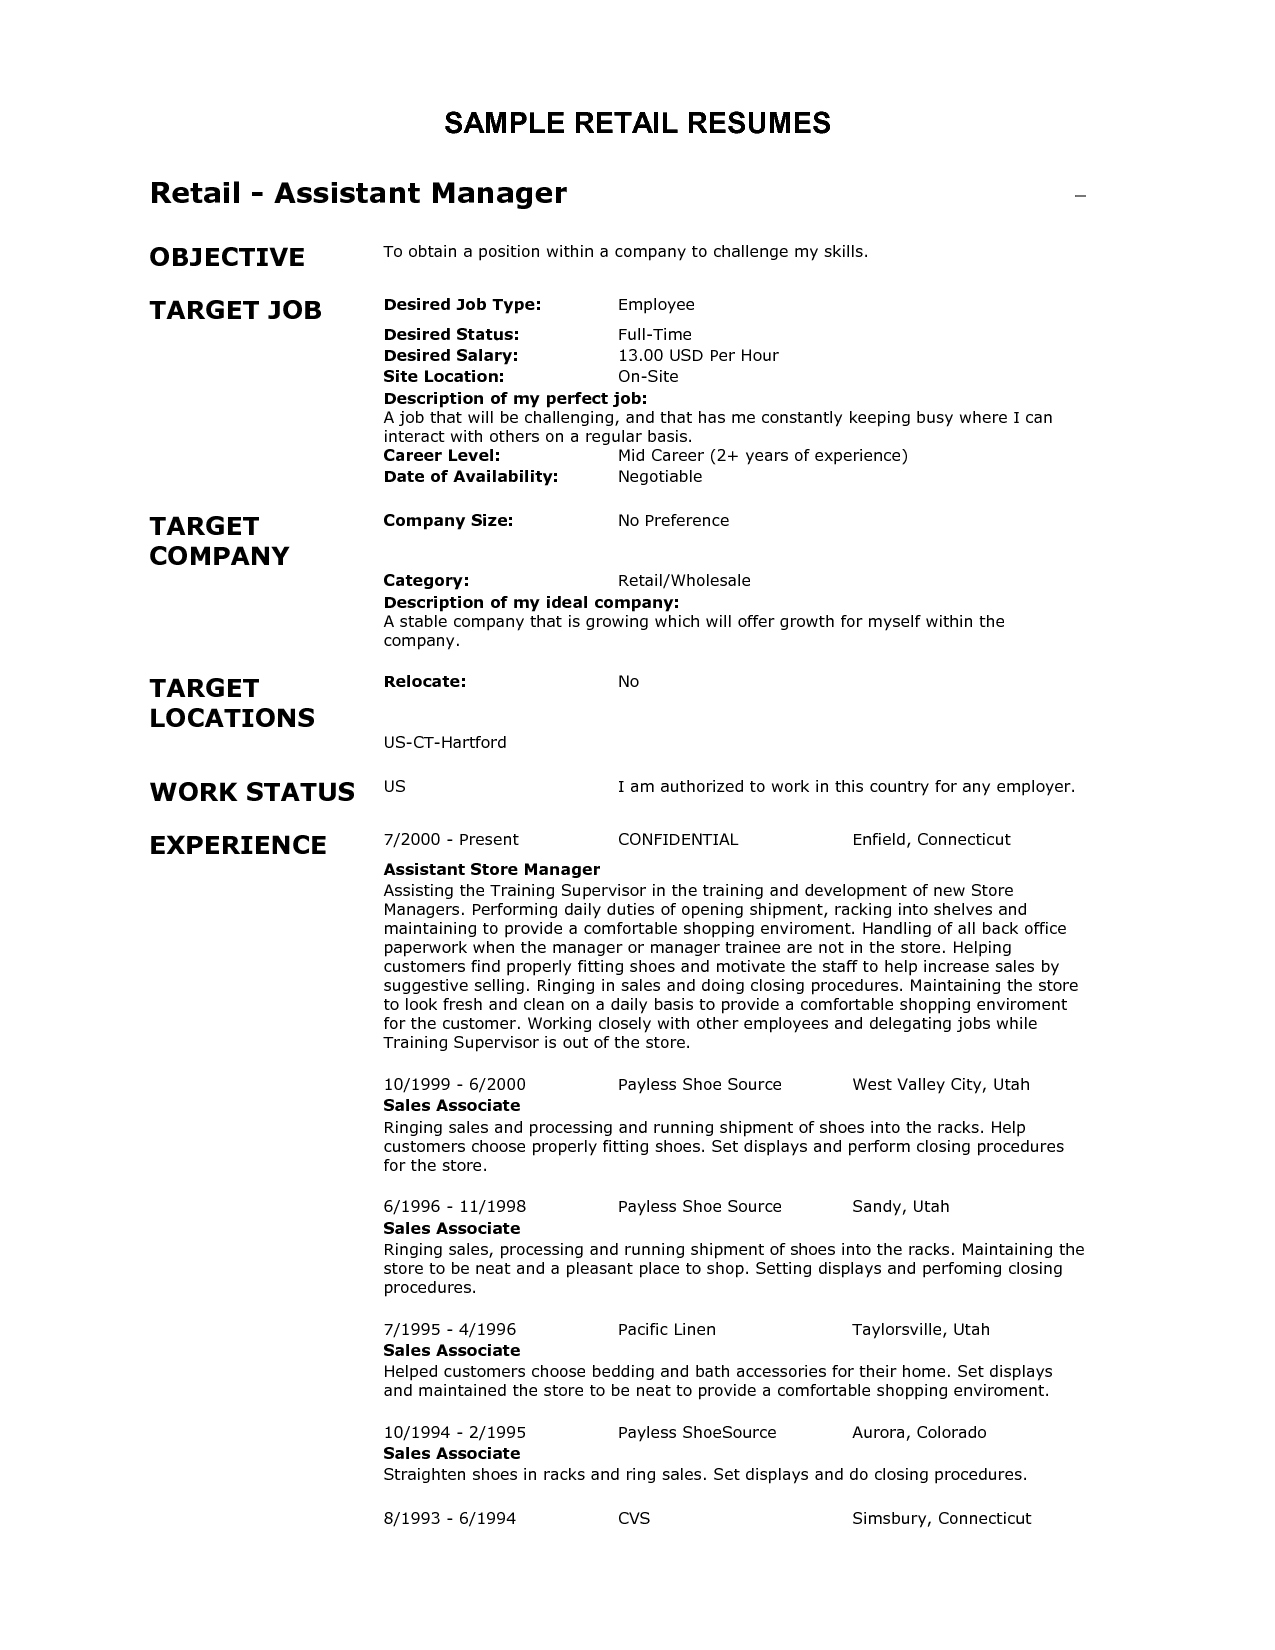 Resume For Shoe Sales Associate 10 Best Resume Objective Samples Samplebusinessresume